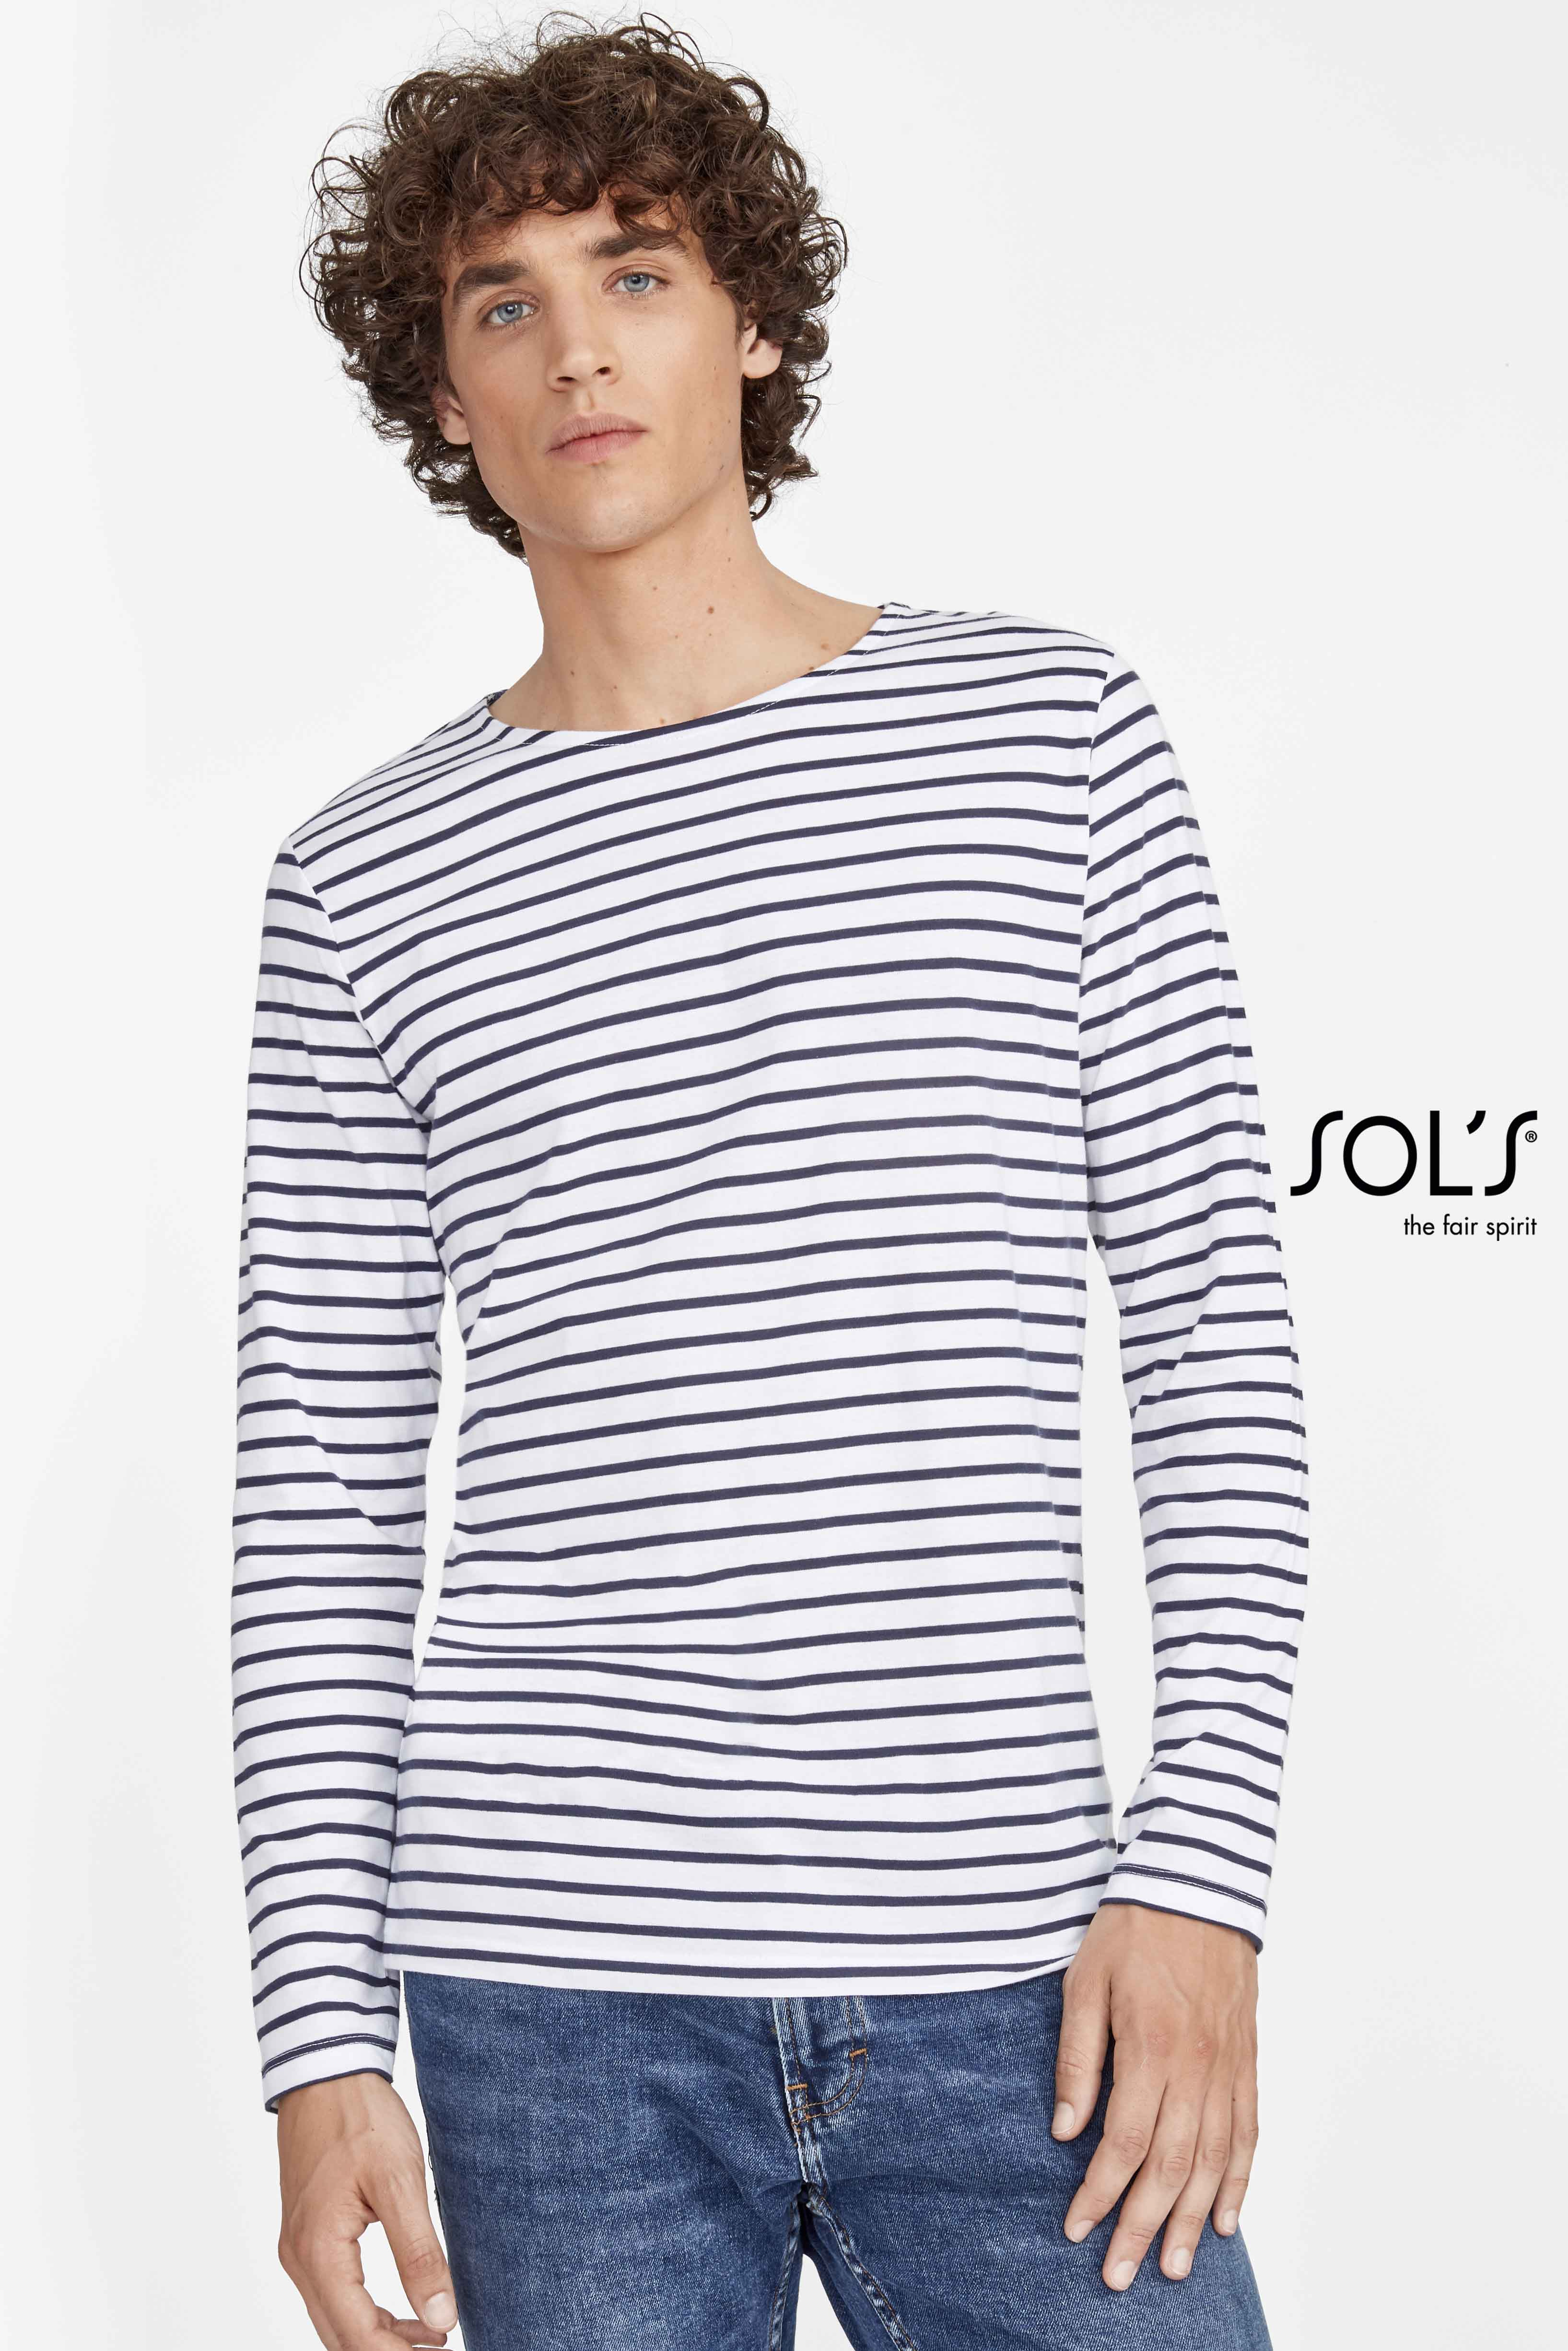 Tee-shirt homme manches longues